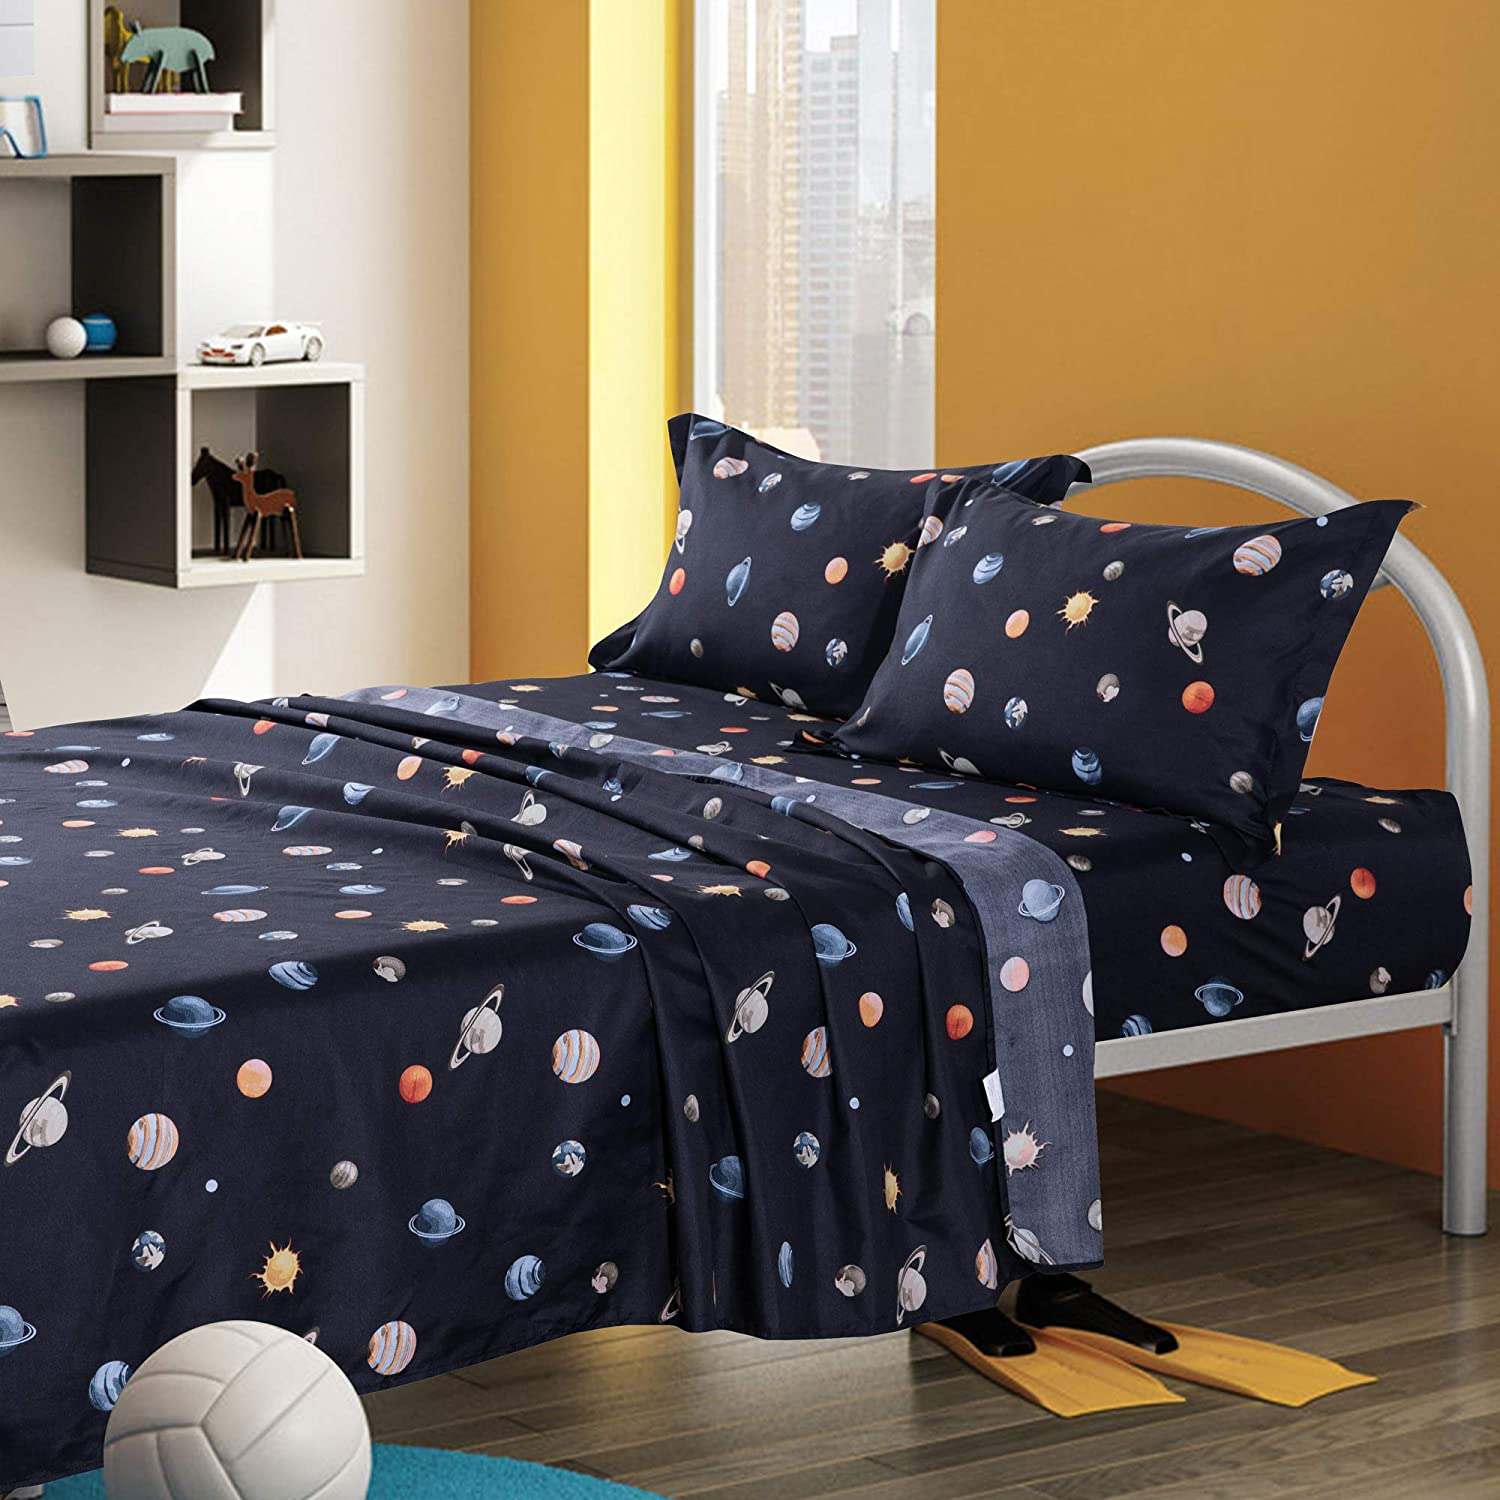 KFZ Planets Printed Full Bed Sheets Set –Soft Egyptian Quality Brushed Microfiber Bed Set - Navy Blue, Solar System 4 Pieces Bedding with 1 Fitted Sheet, 1 Flat Sheet, 2 Pillowcases